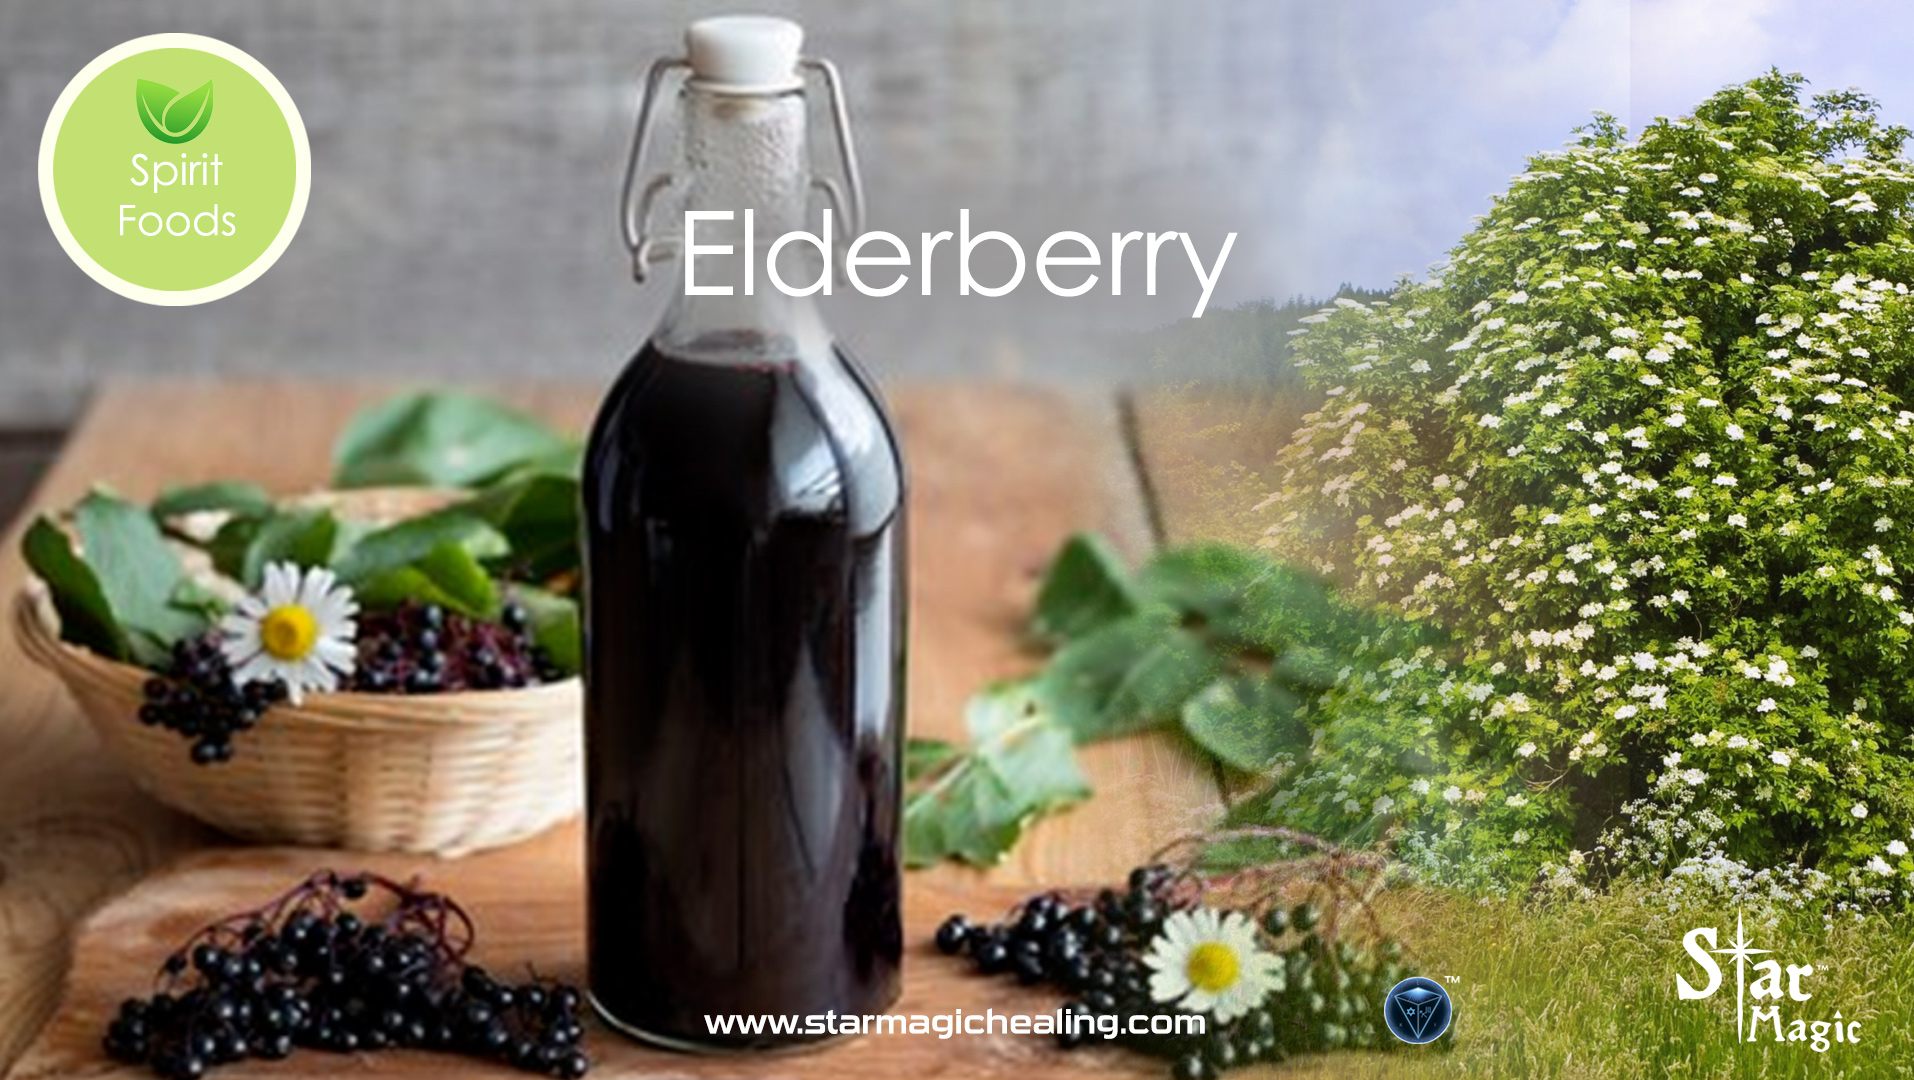 Spirit Food – Elderberry